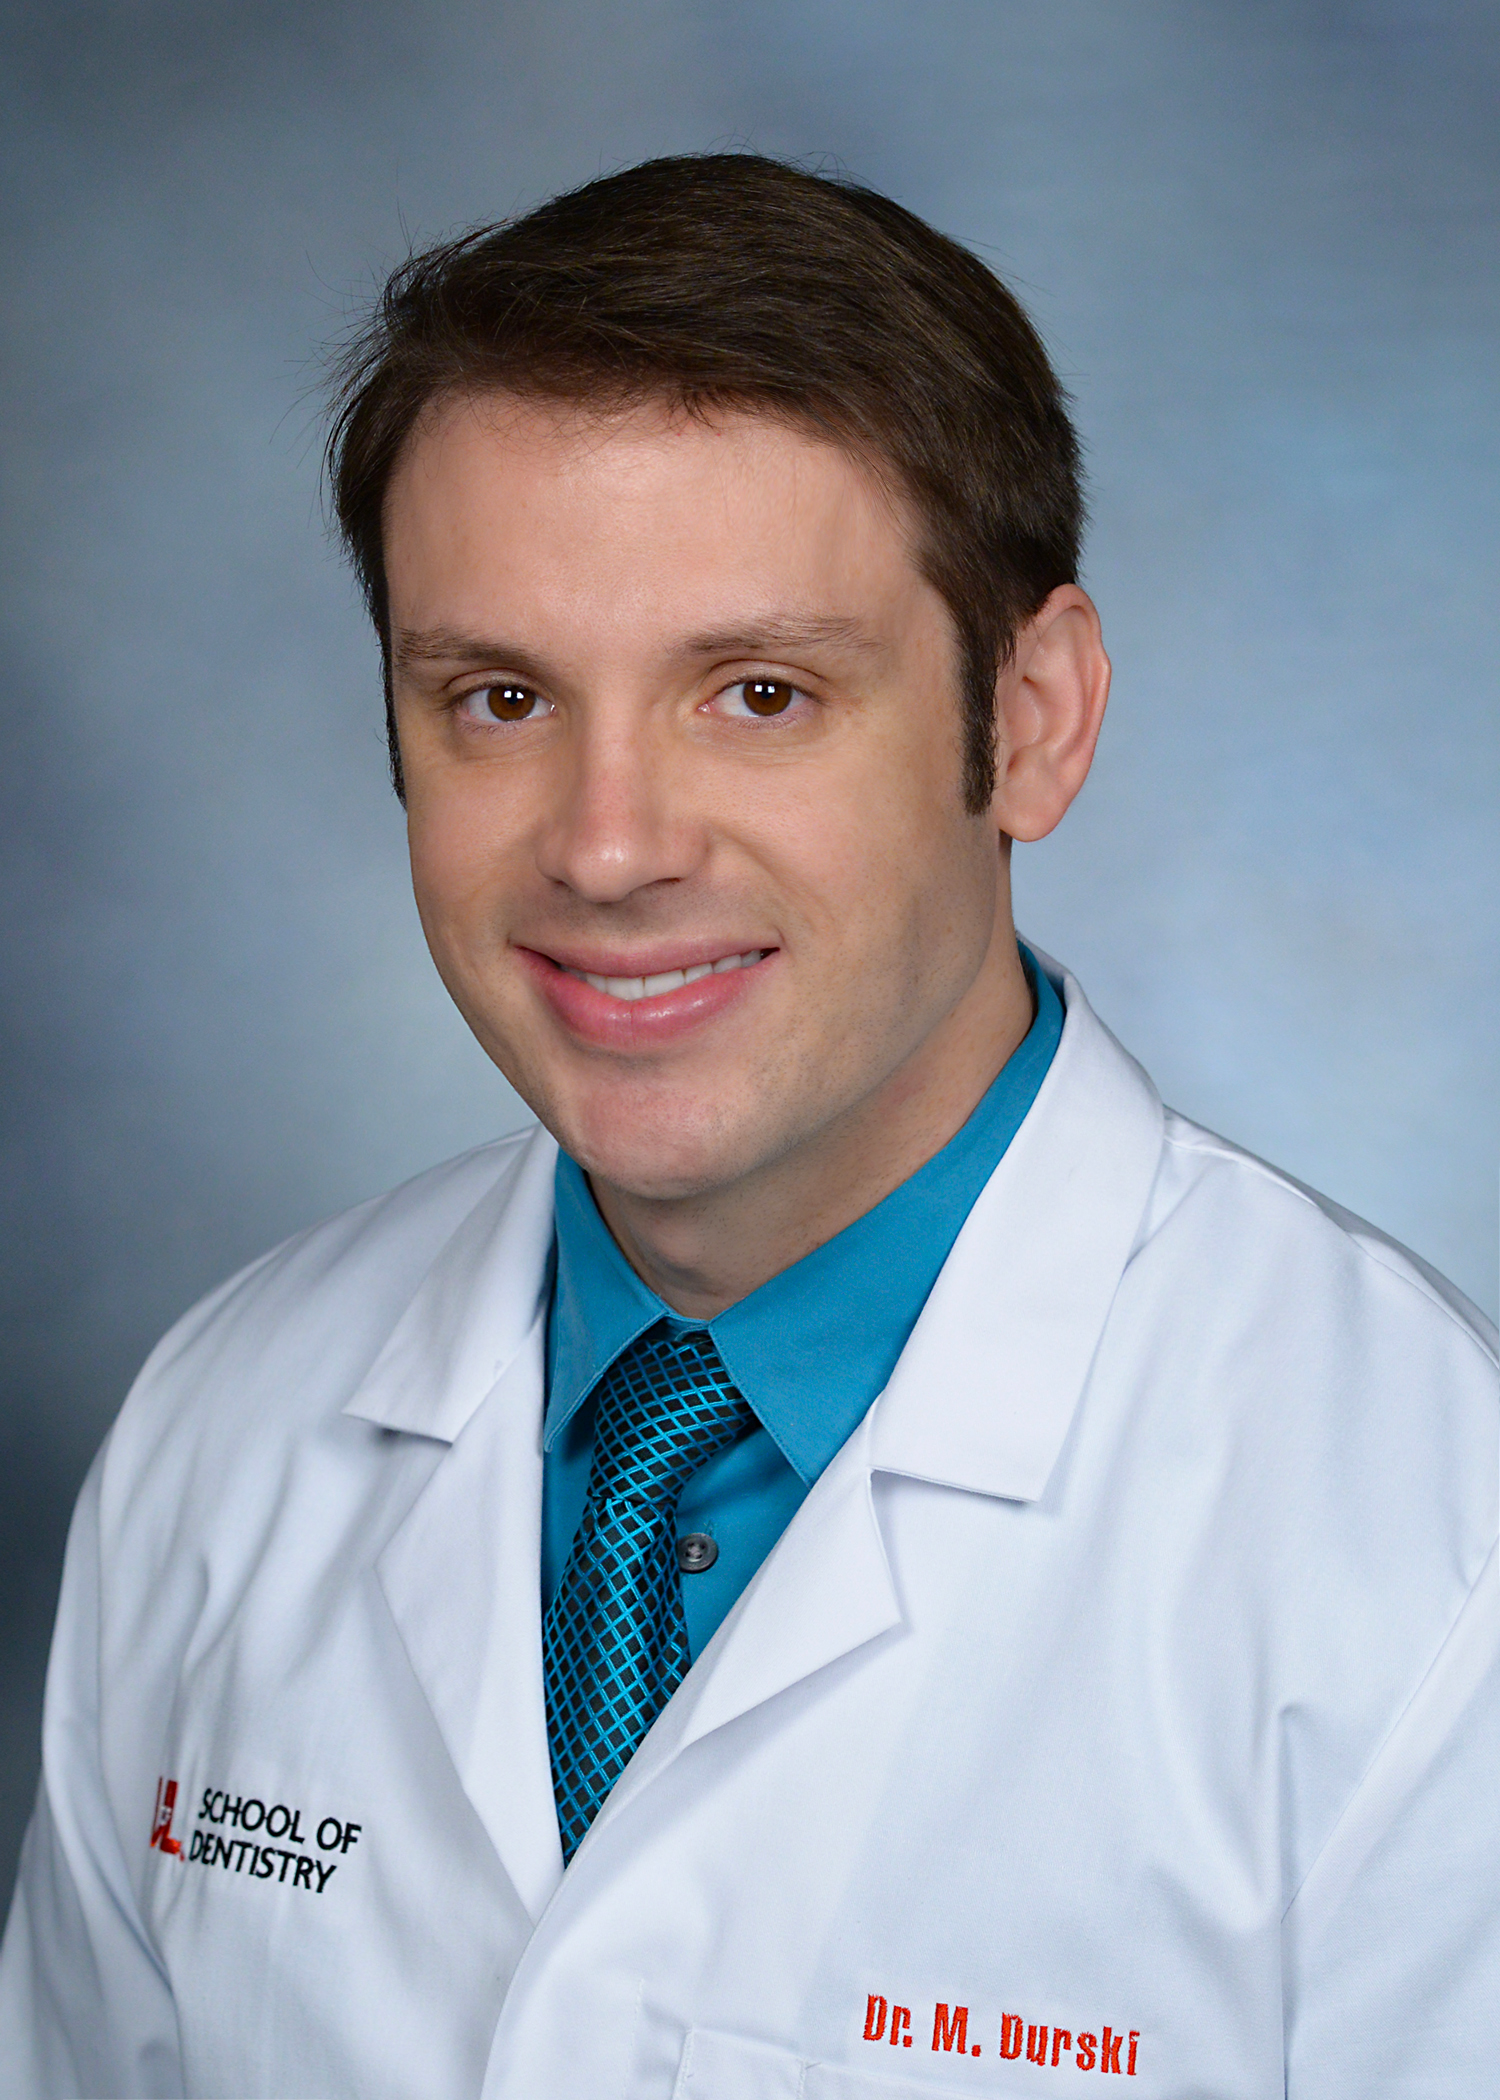 Image of Dr. Marcelo Durski, DDS, MDS, PhD at the University of Louisville School of Dentistry